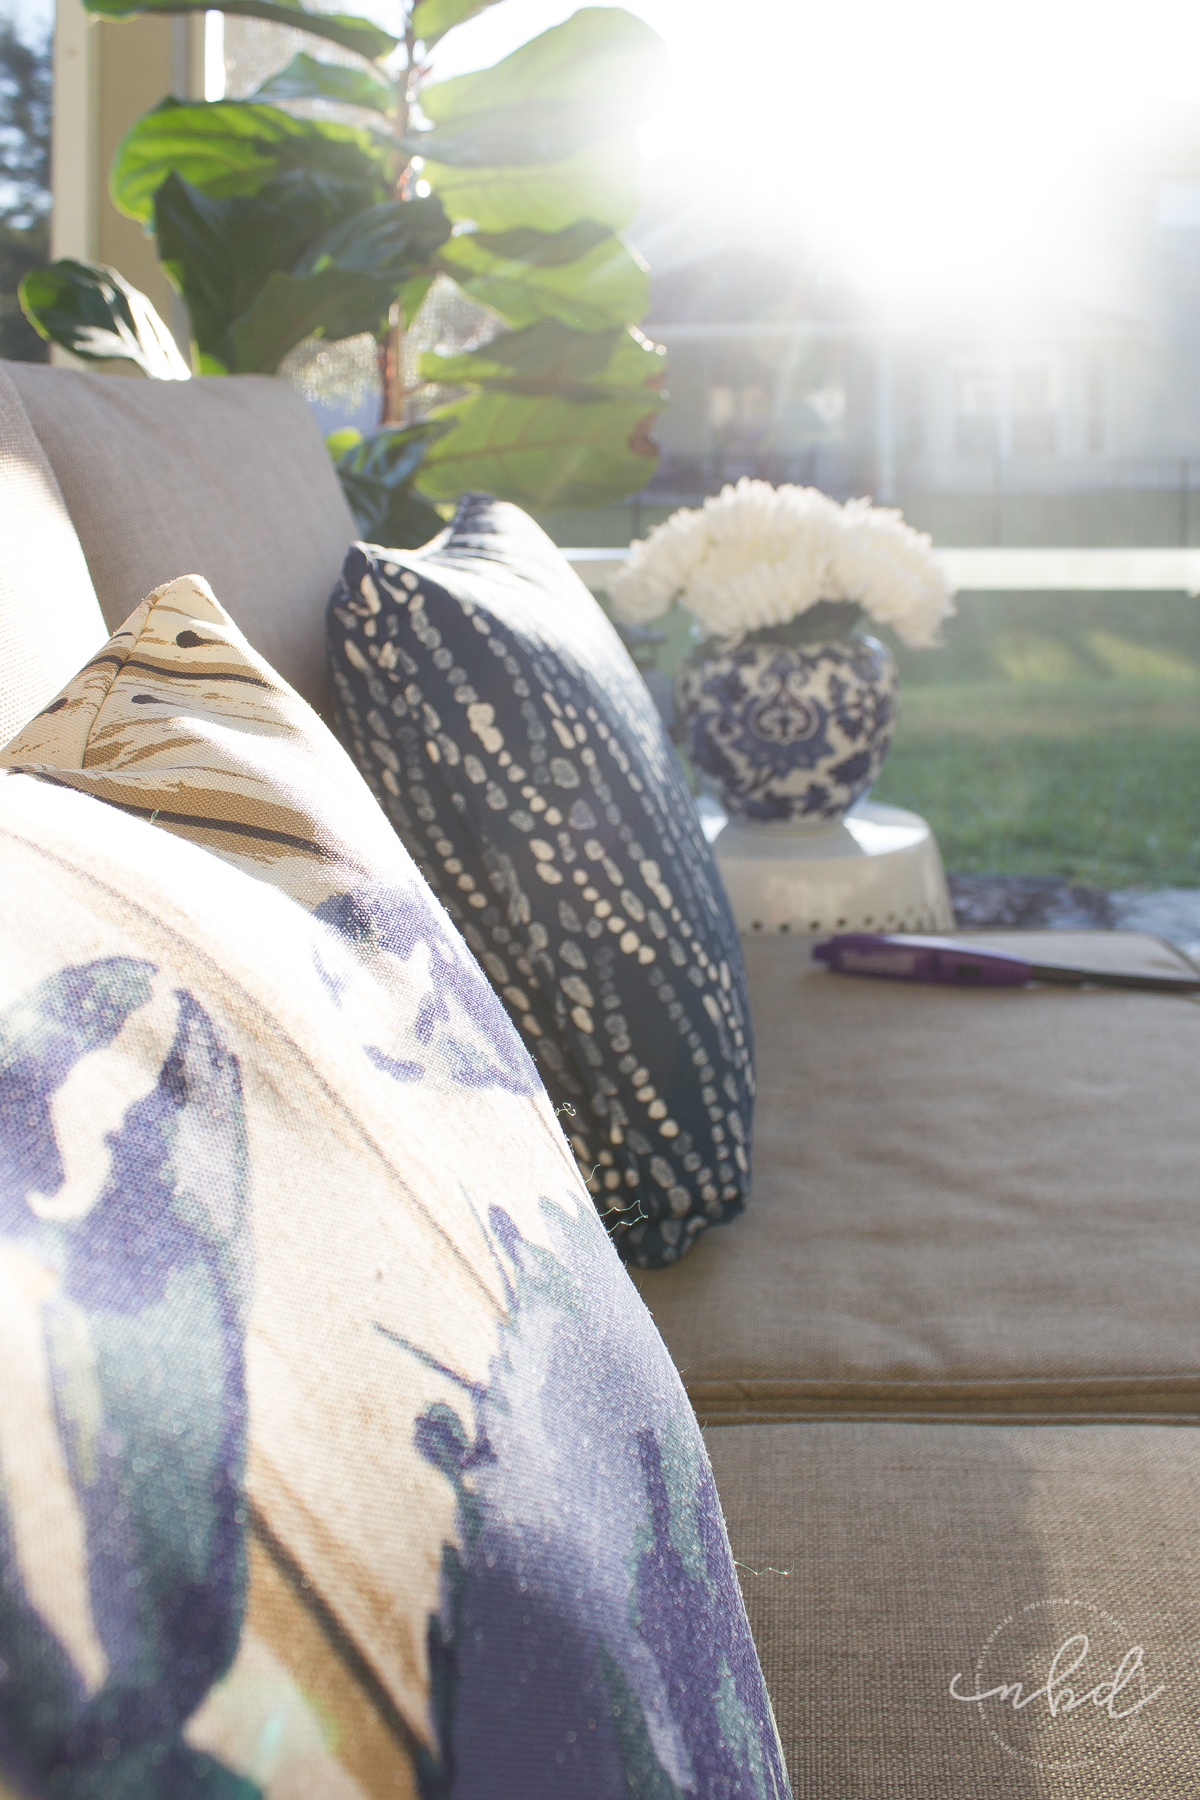 Lowe's #MyOutdoorOasis pillows and sunshine - Northern Belle Diaries